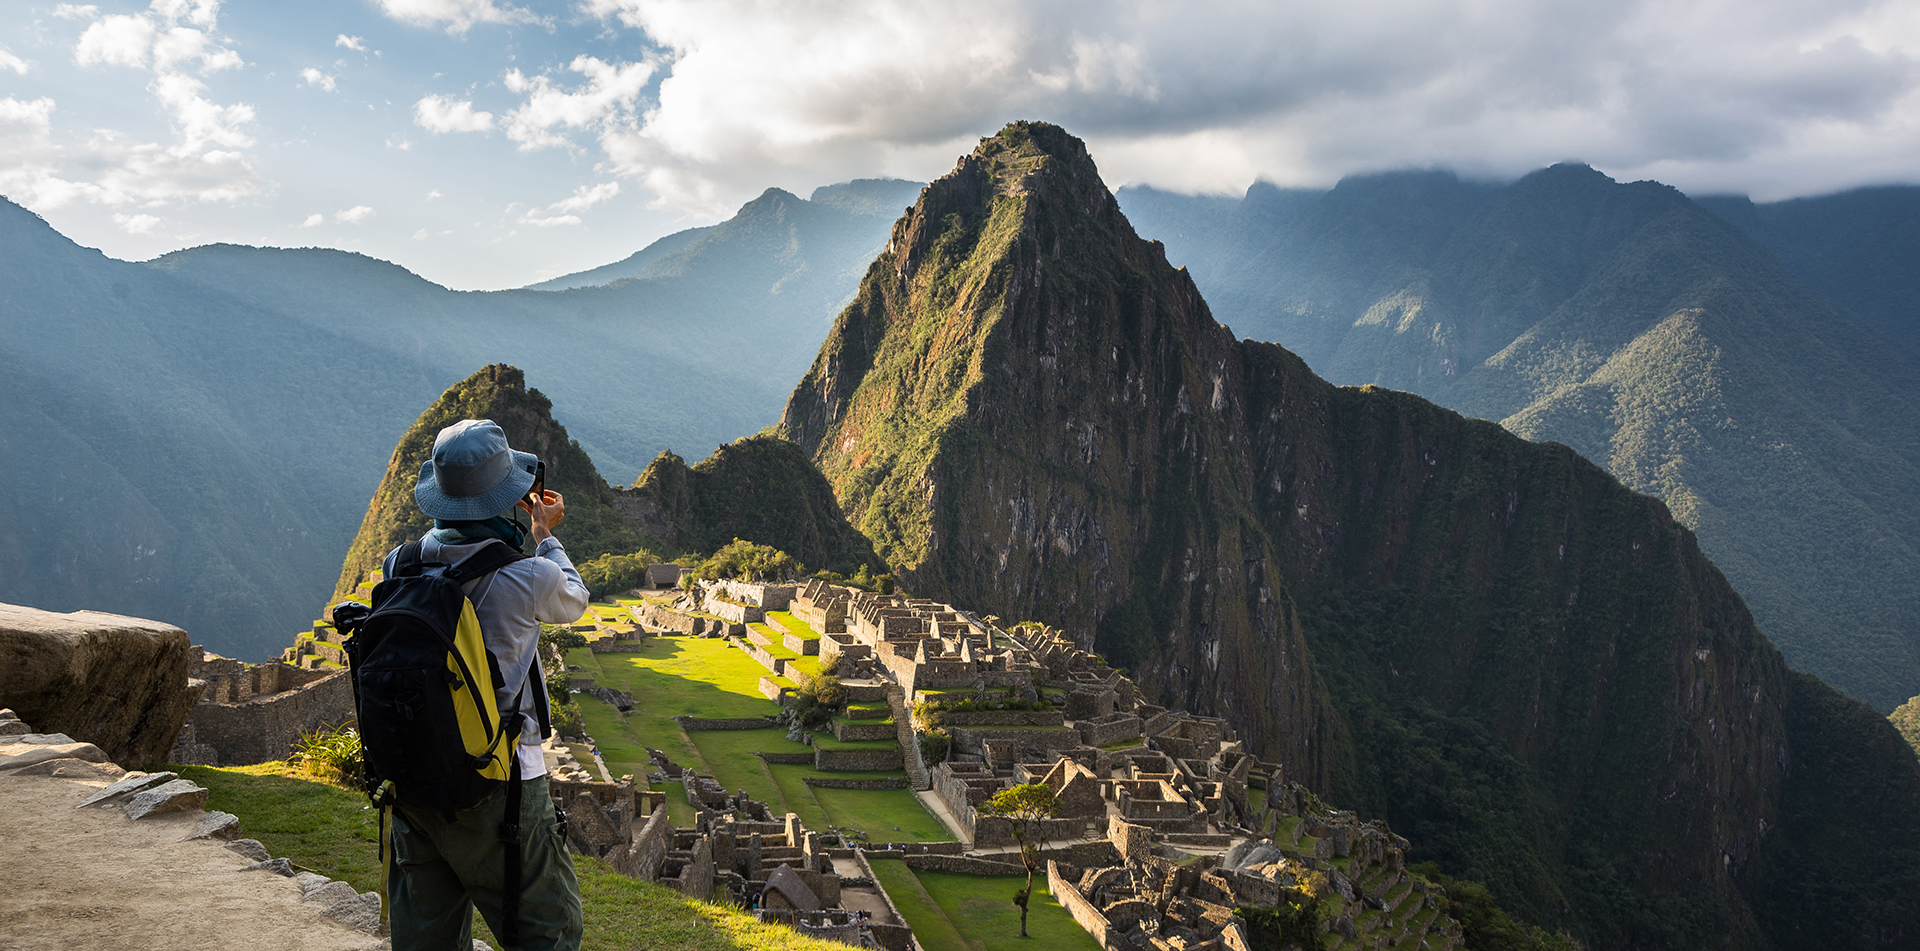 South America Peru Andes hiker taking photo of scenic Machu Picchu and ancient Inca ruins - luxury vacation destinations